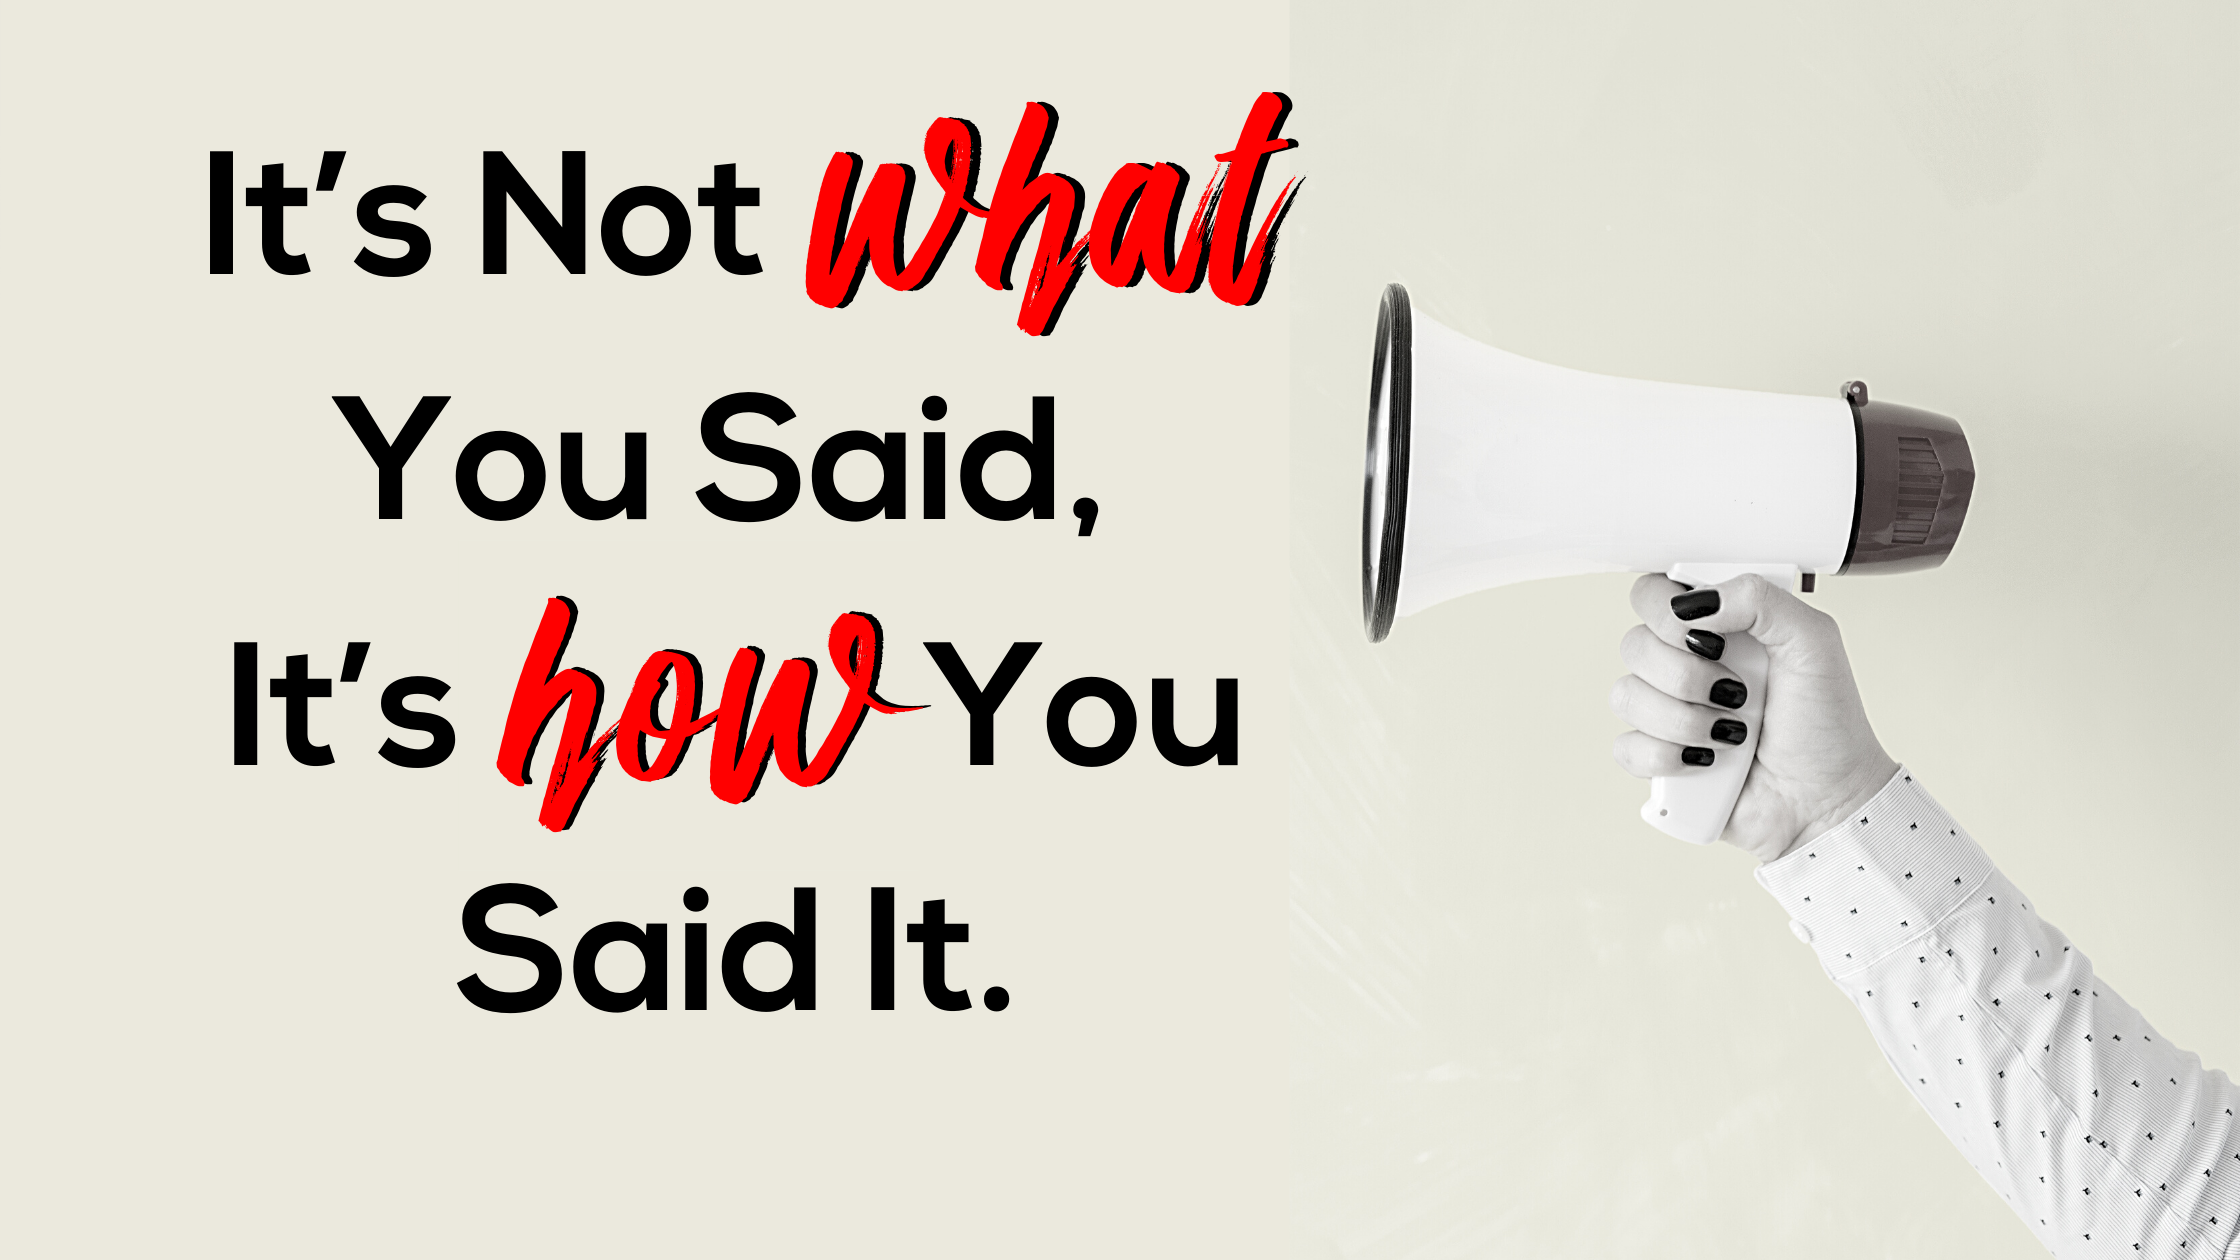 It's Not What You Said, It's How You Said It.